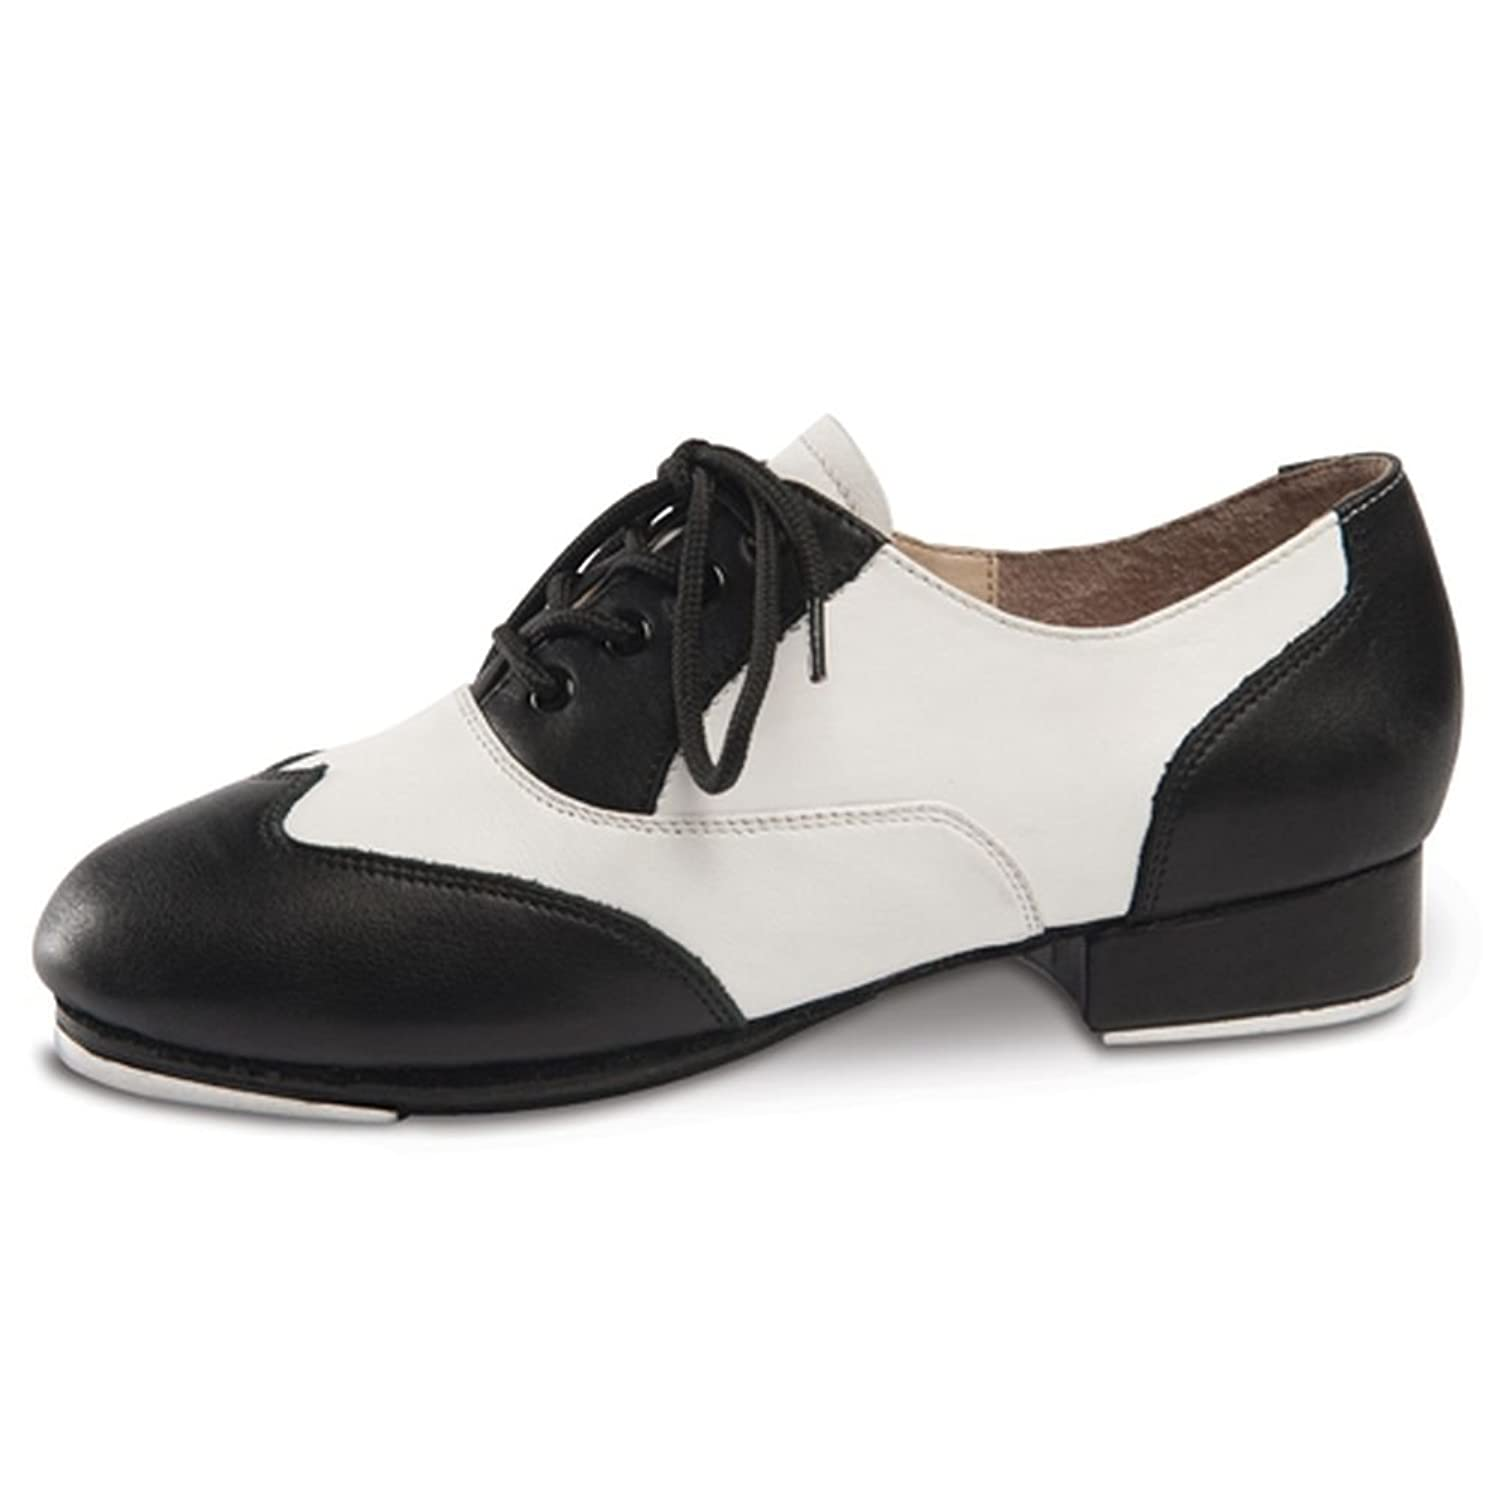 1930s Style Shoes – Art Deco Shoes Danshuz Womens Black White Saddle Style Tap Dance Shoes Size 3-11 $119.95 AT vintagedancer.com